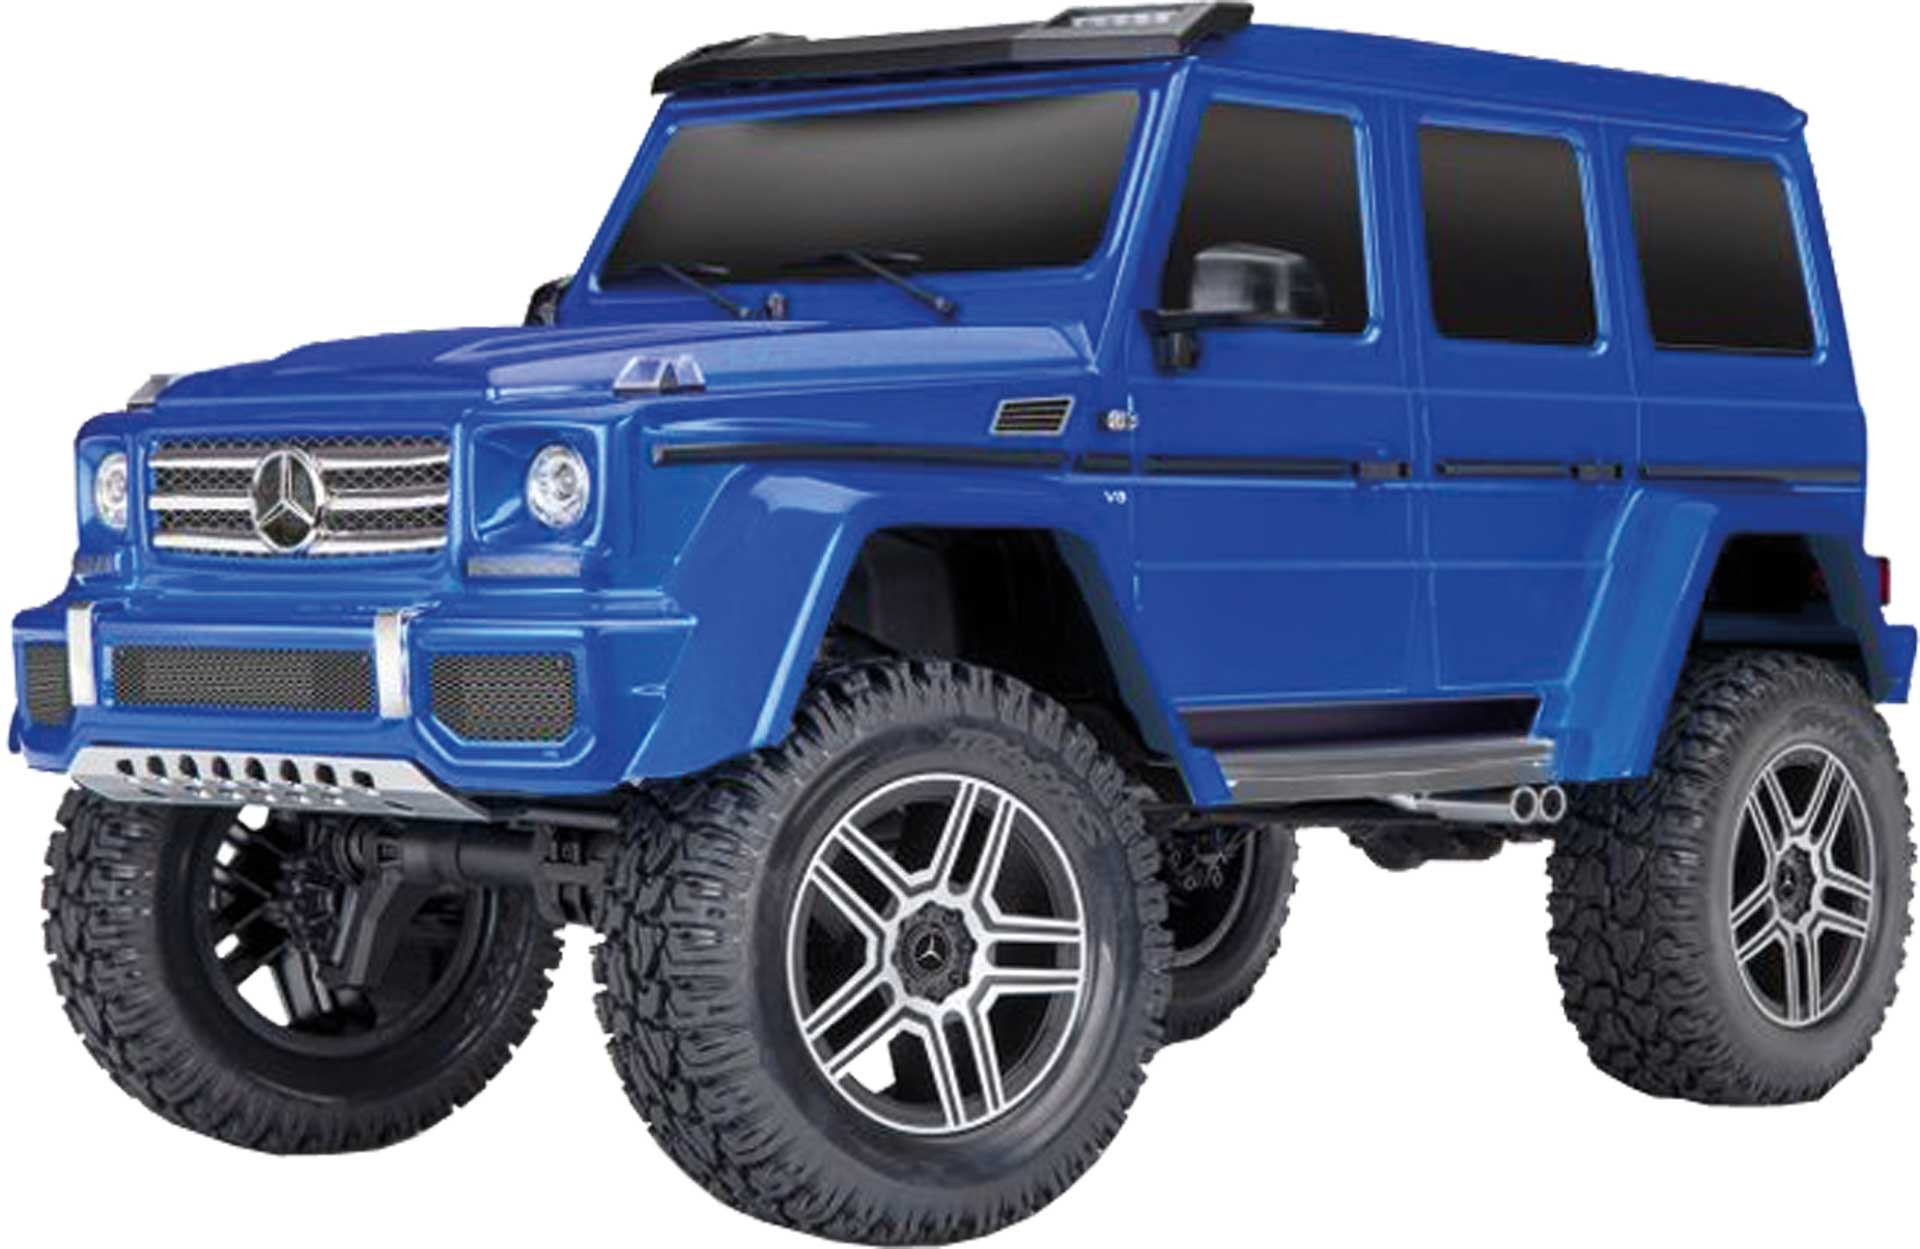 TRAXXAS TRX-4 MERCEDES G 4X4² RTR BLUE 1/10 WITHOUT BATTERY / CHARGER 4WD SCALE CRAWLER BRUSHED